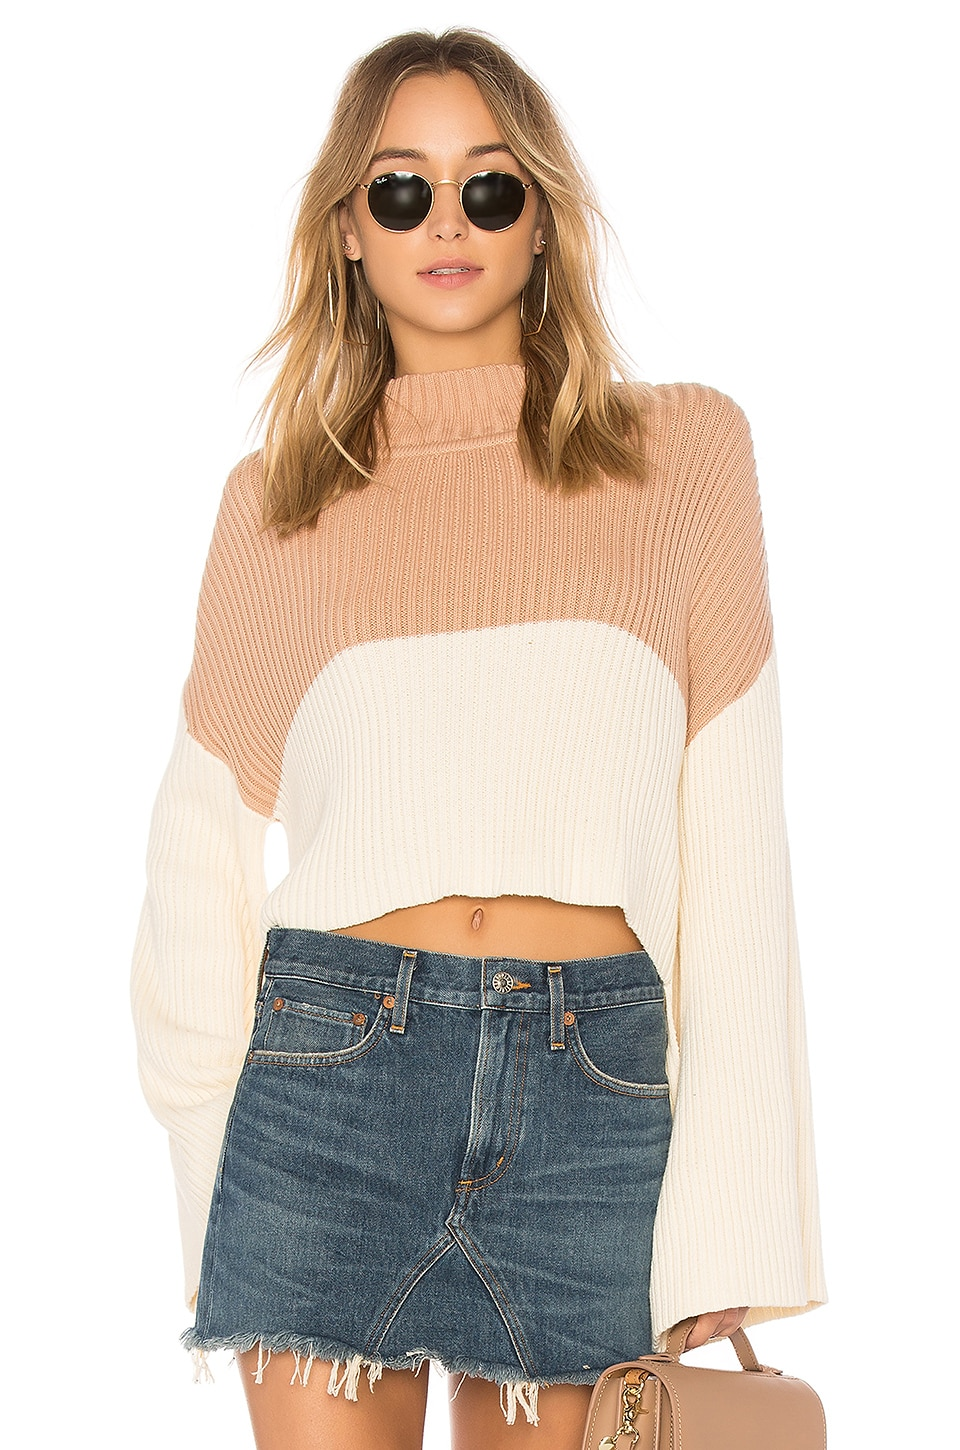 Somedays Lovin Like a Melody Sweater in Cream & Dusty Pink